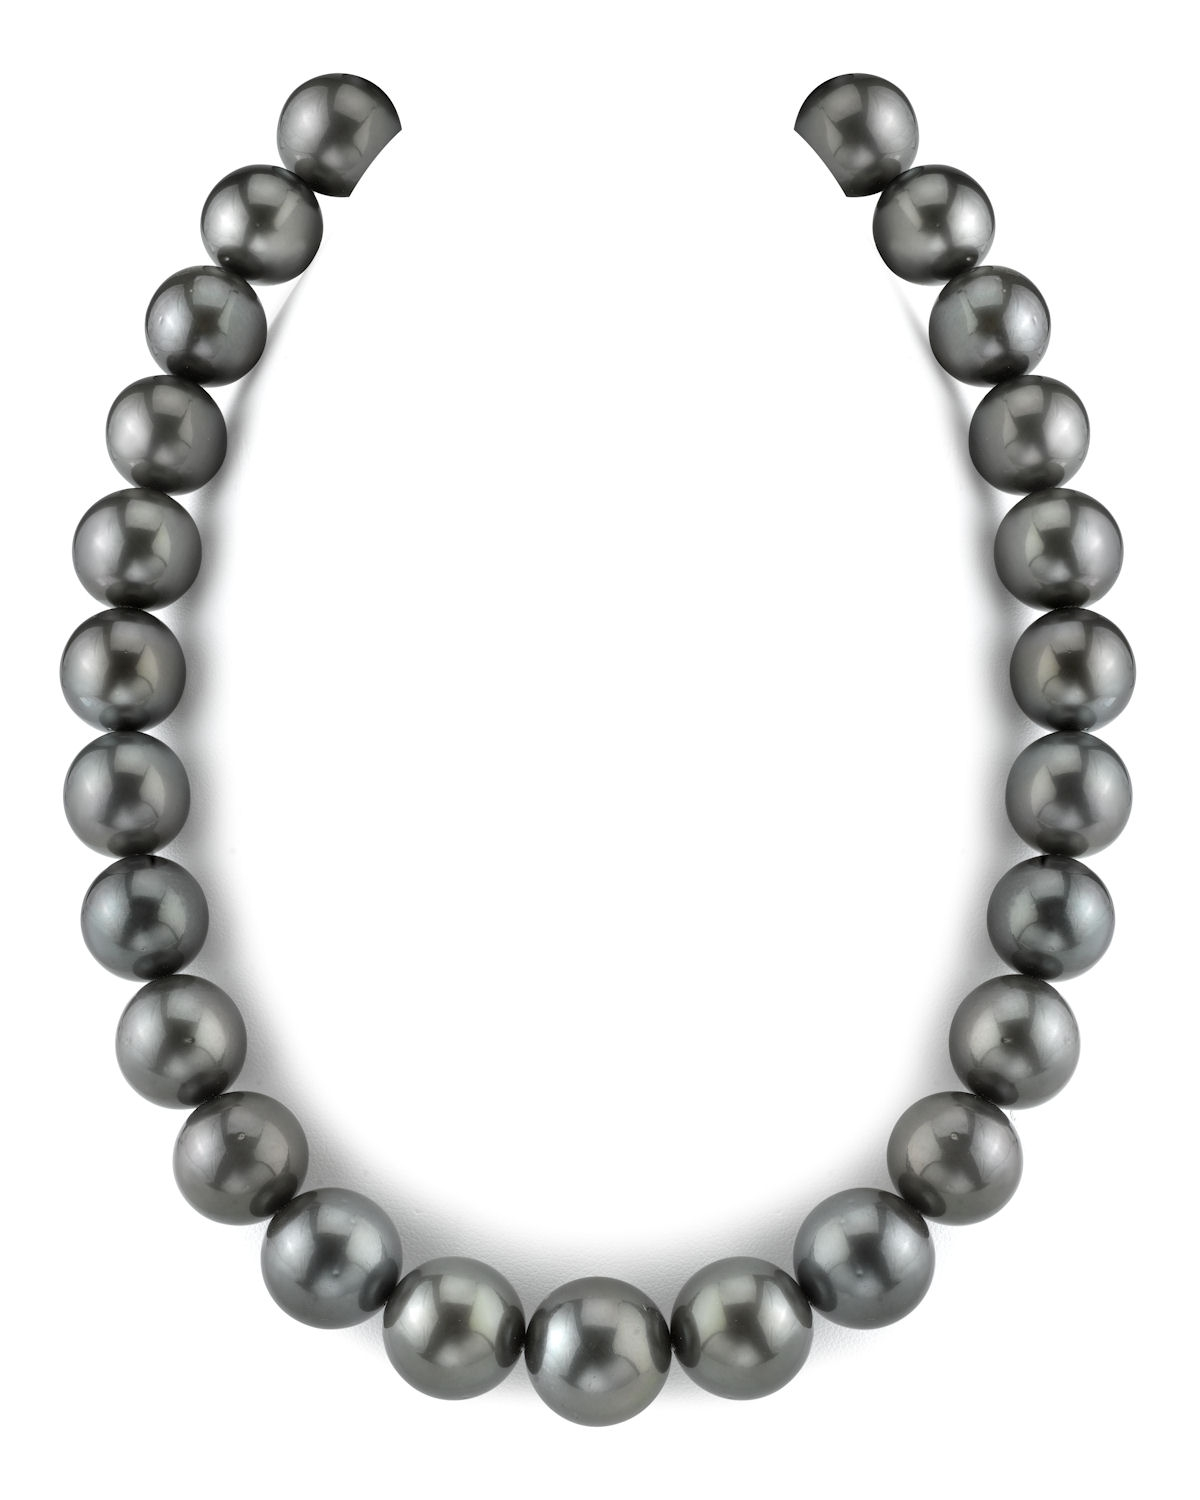 15-17.9mm Black Tahitian South Sea Pearl Necklace-AAAA Quality